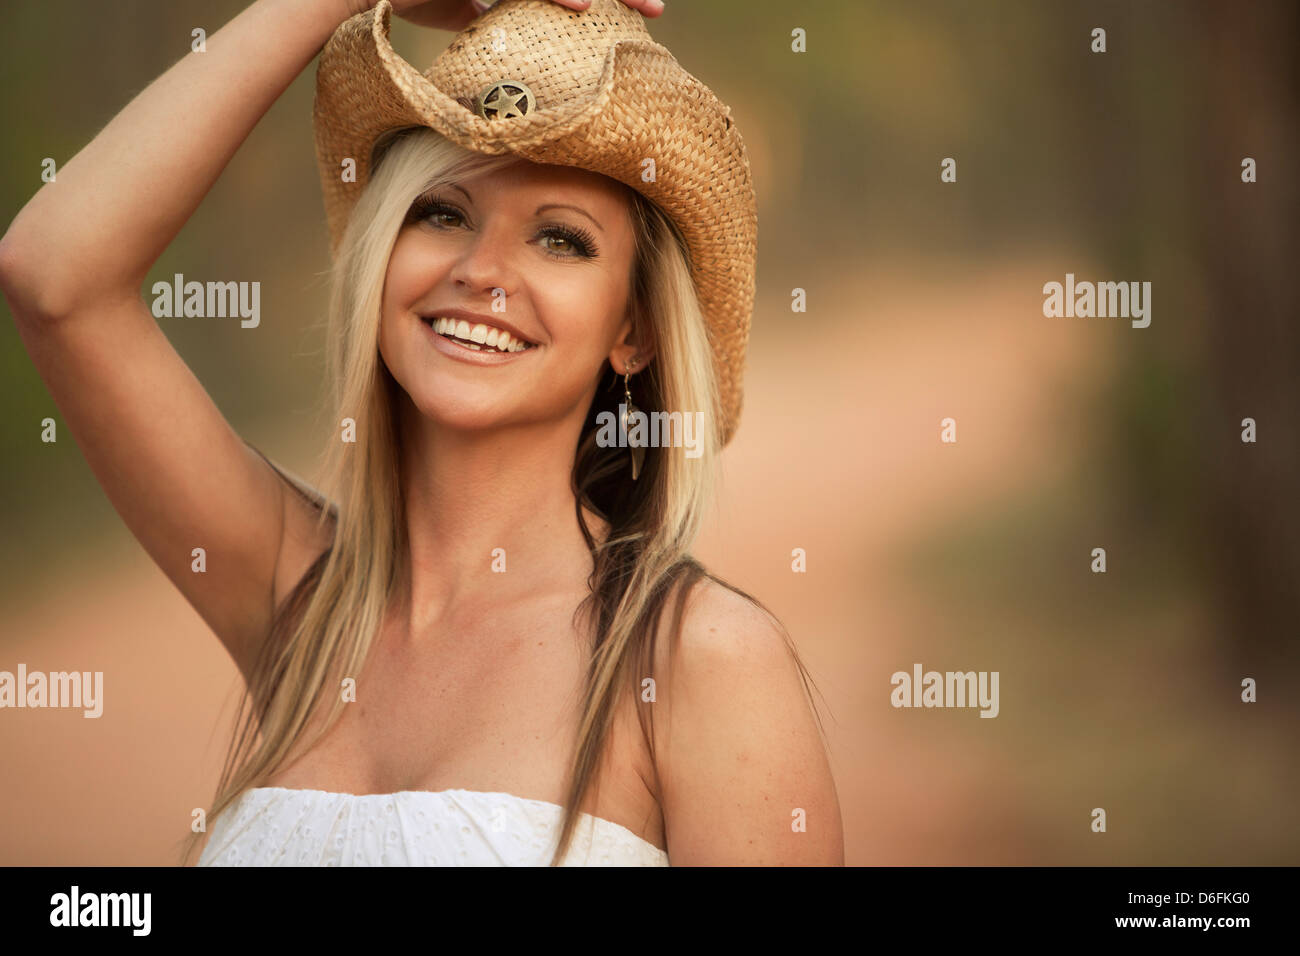 Portrait southern girl in cowboy hat outside - Stock Image